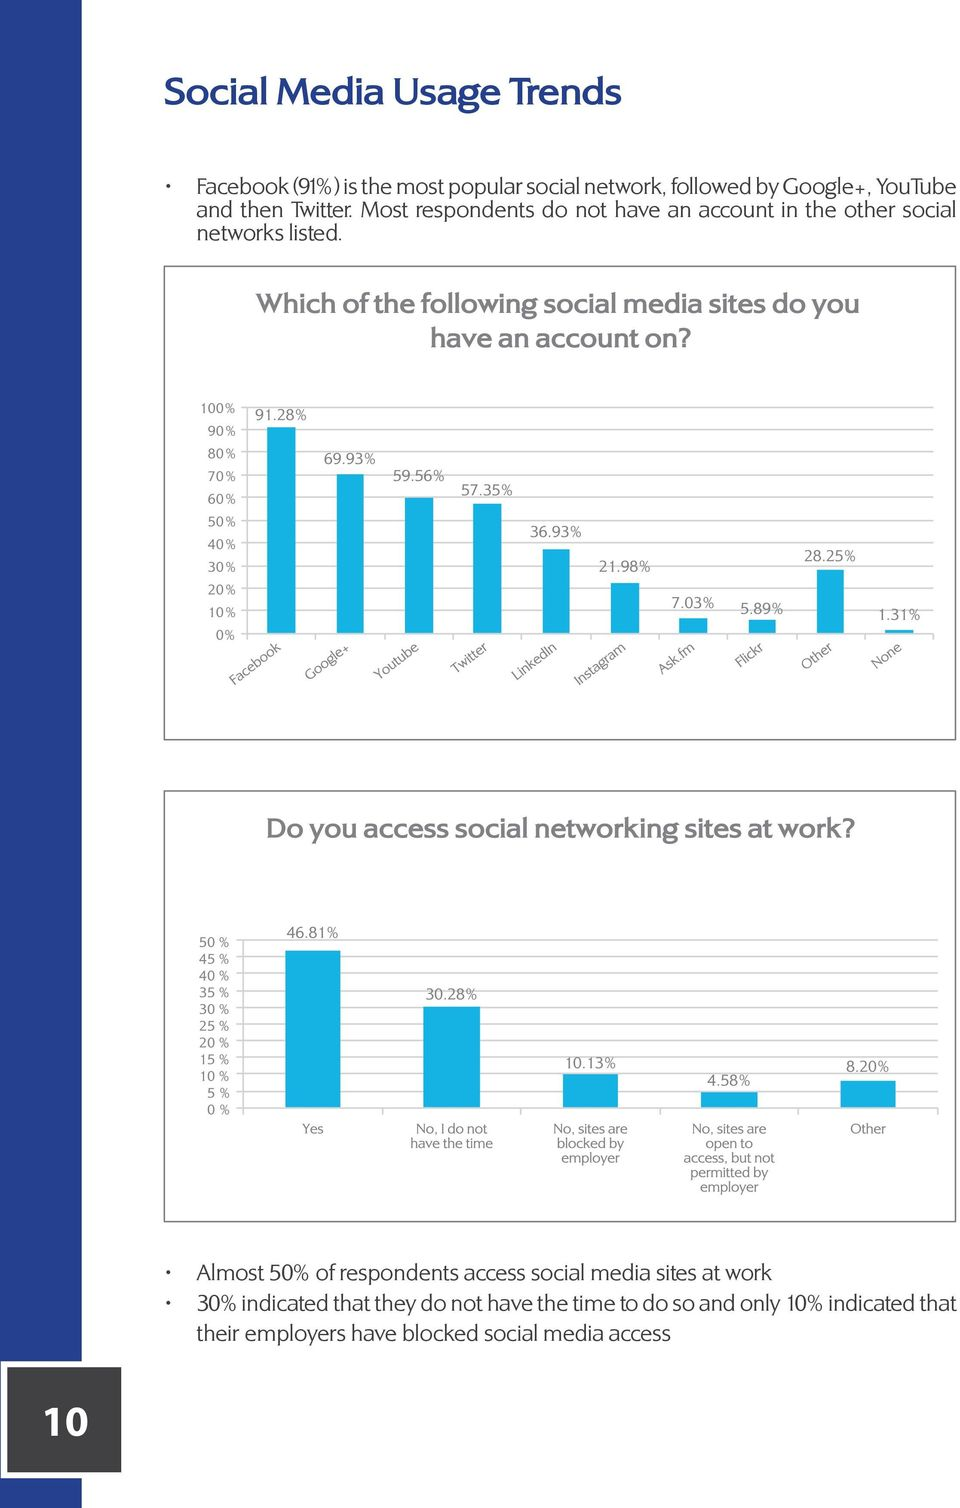 Most respondents do not have an account in the other social networks listed.